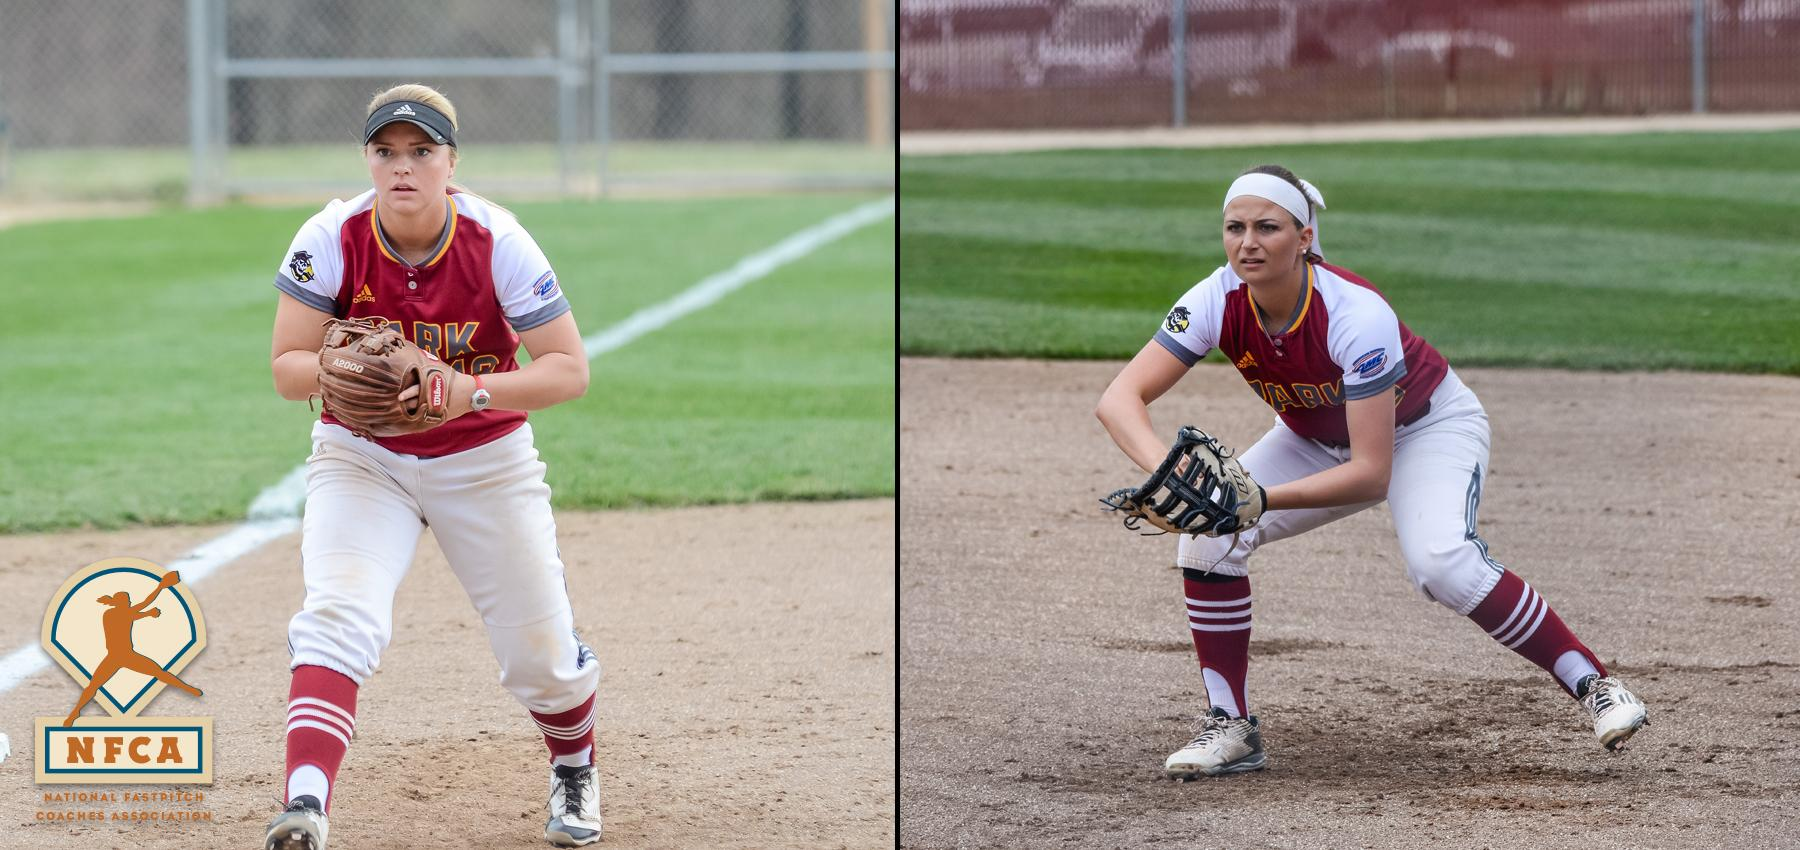 Land and Carr Named to NFCA NAIA Midwest Region Teams